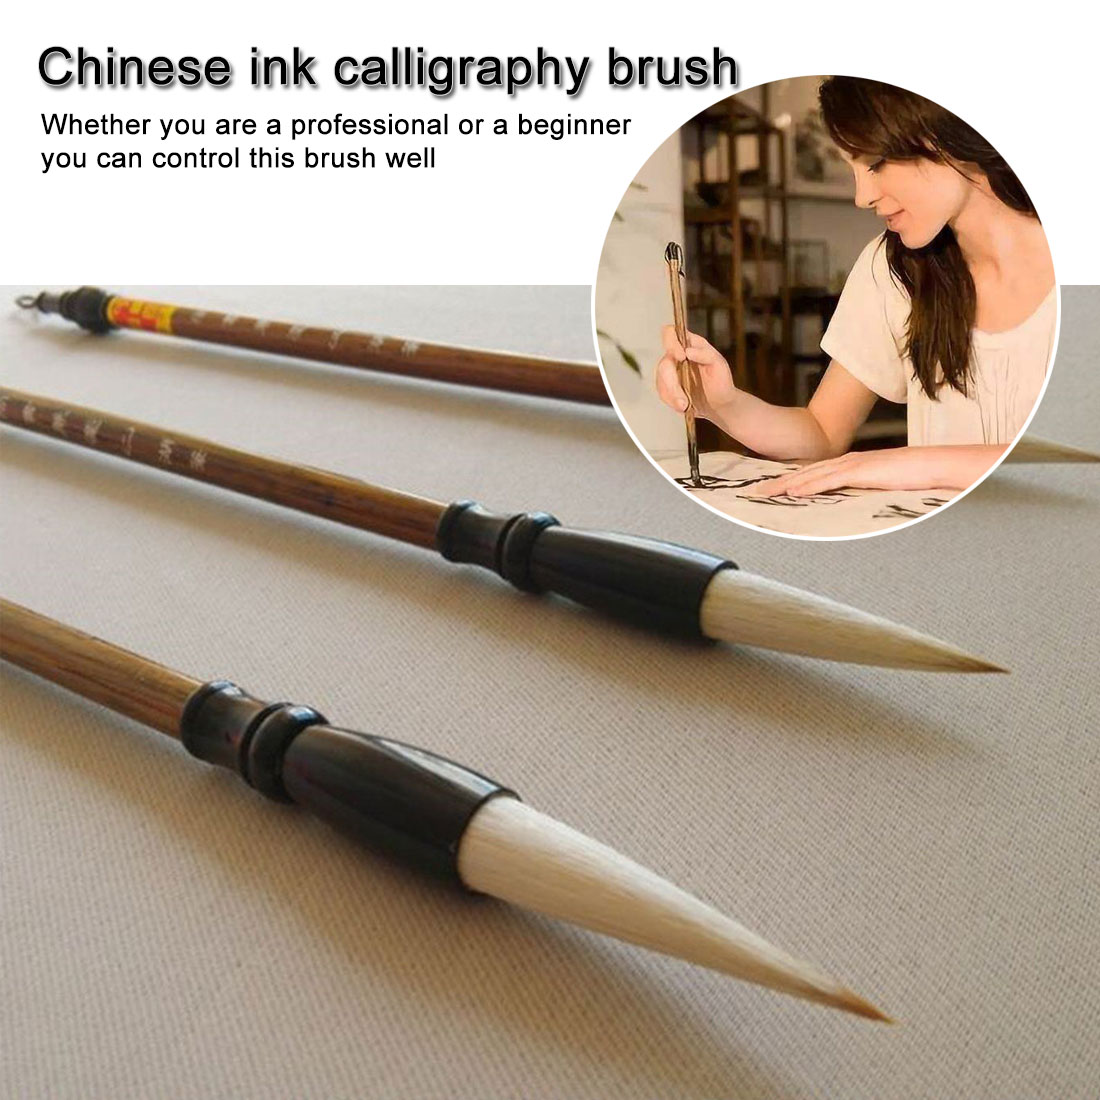 3pcs/set Excellent Quality Chinese Calligraphy Brushes Pen For Woolen And Weasel Hair Writing Brush Fit For Student School